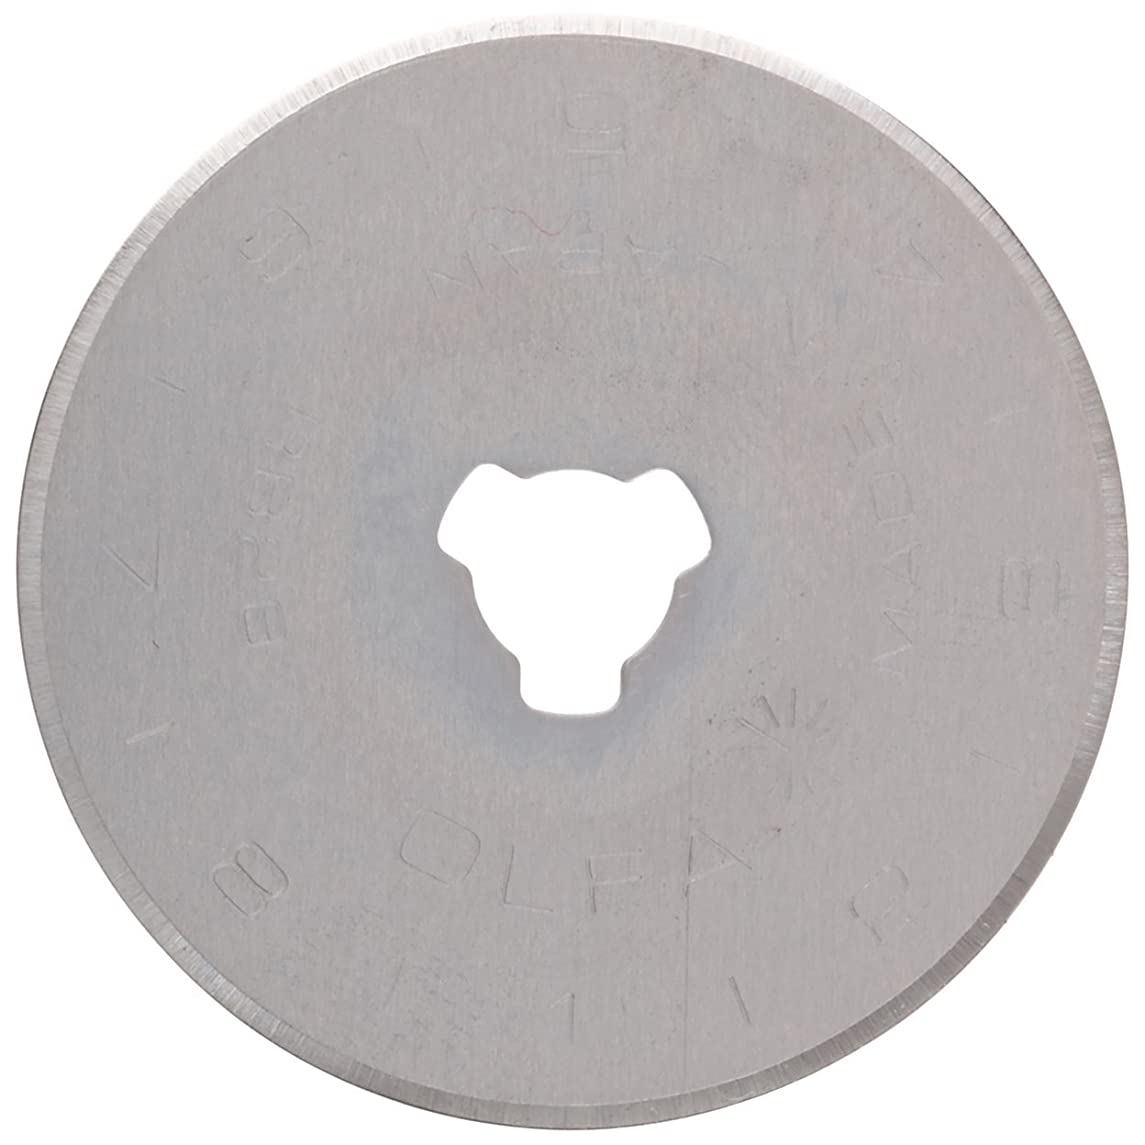 PRYM/OLFA 611373 Spare blades STANDARD for rotary cutters Size 28mm, 2 pieces